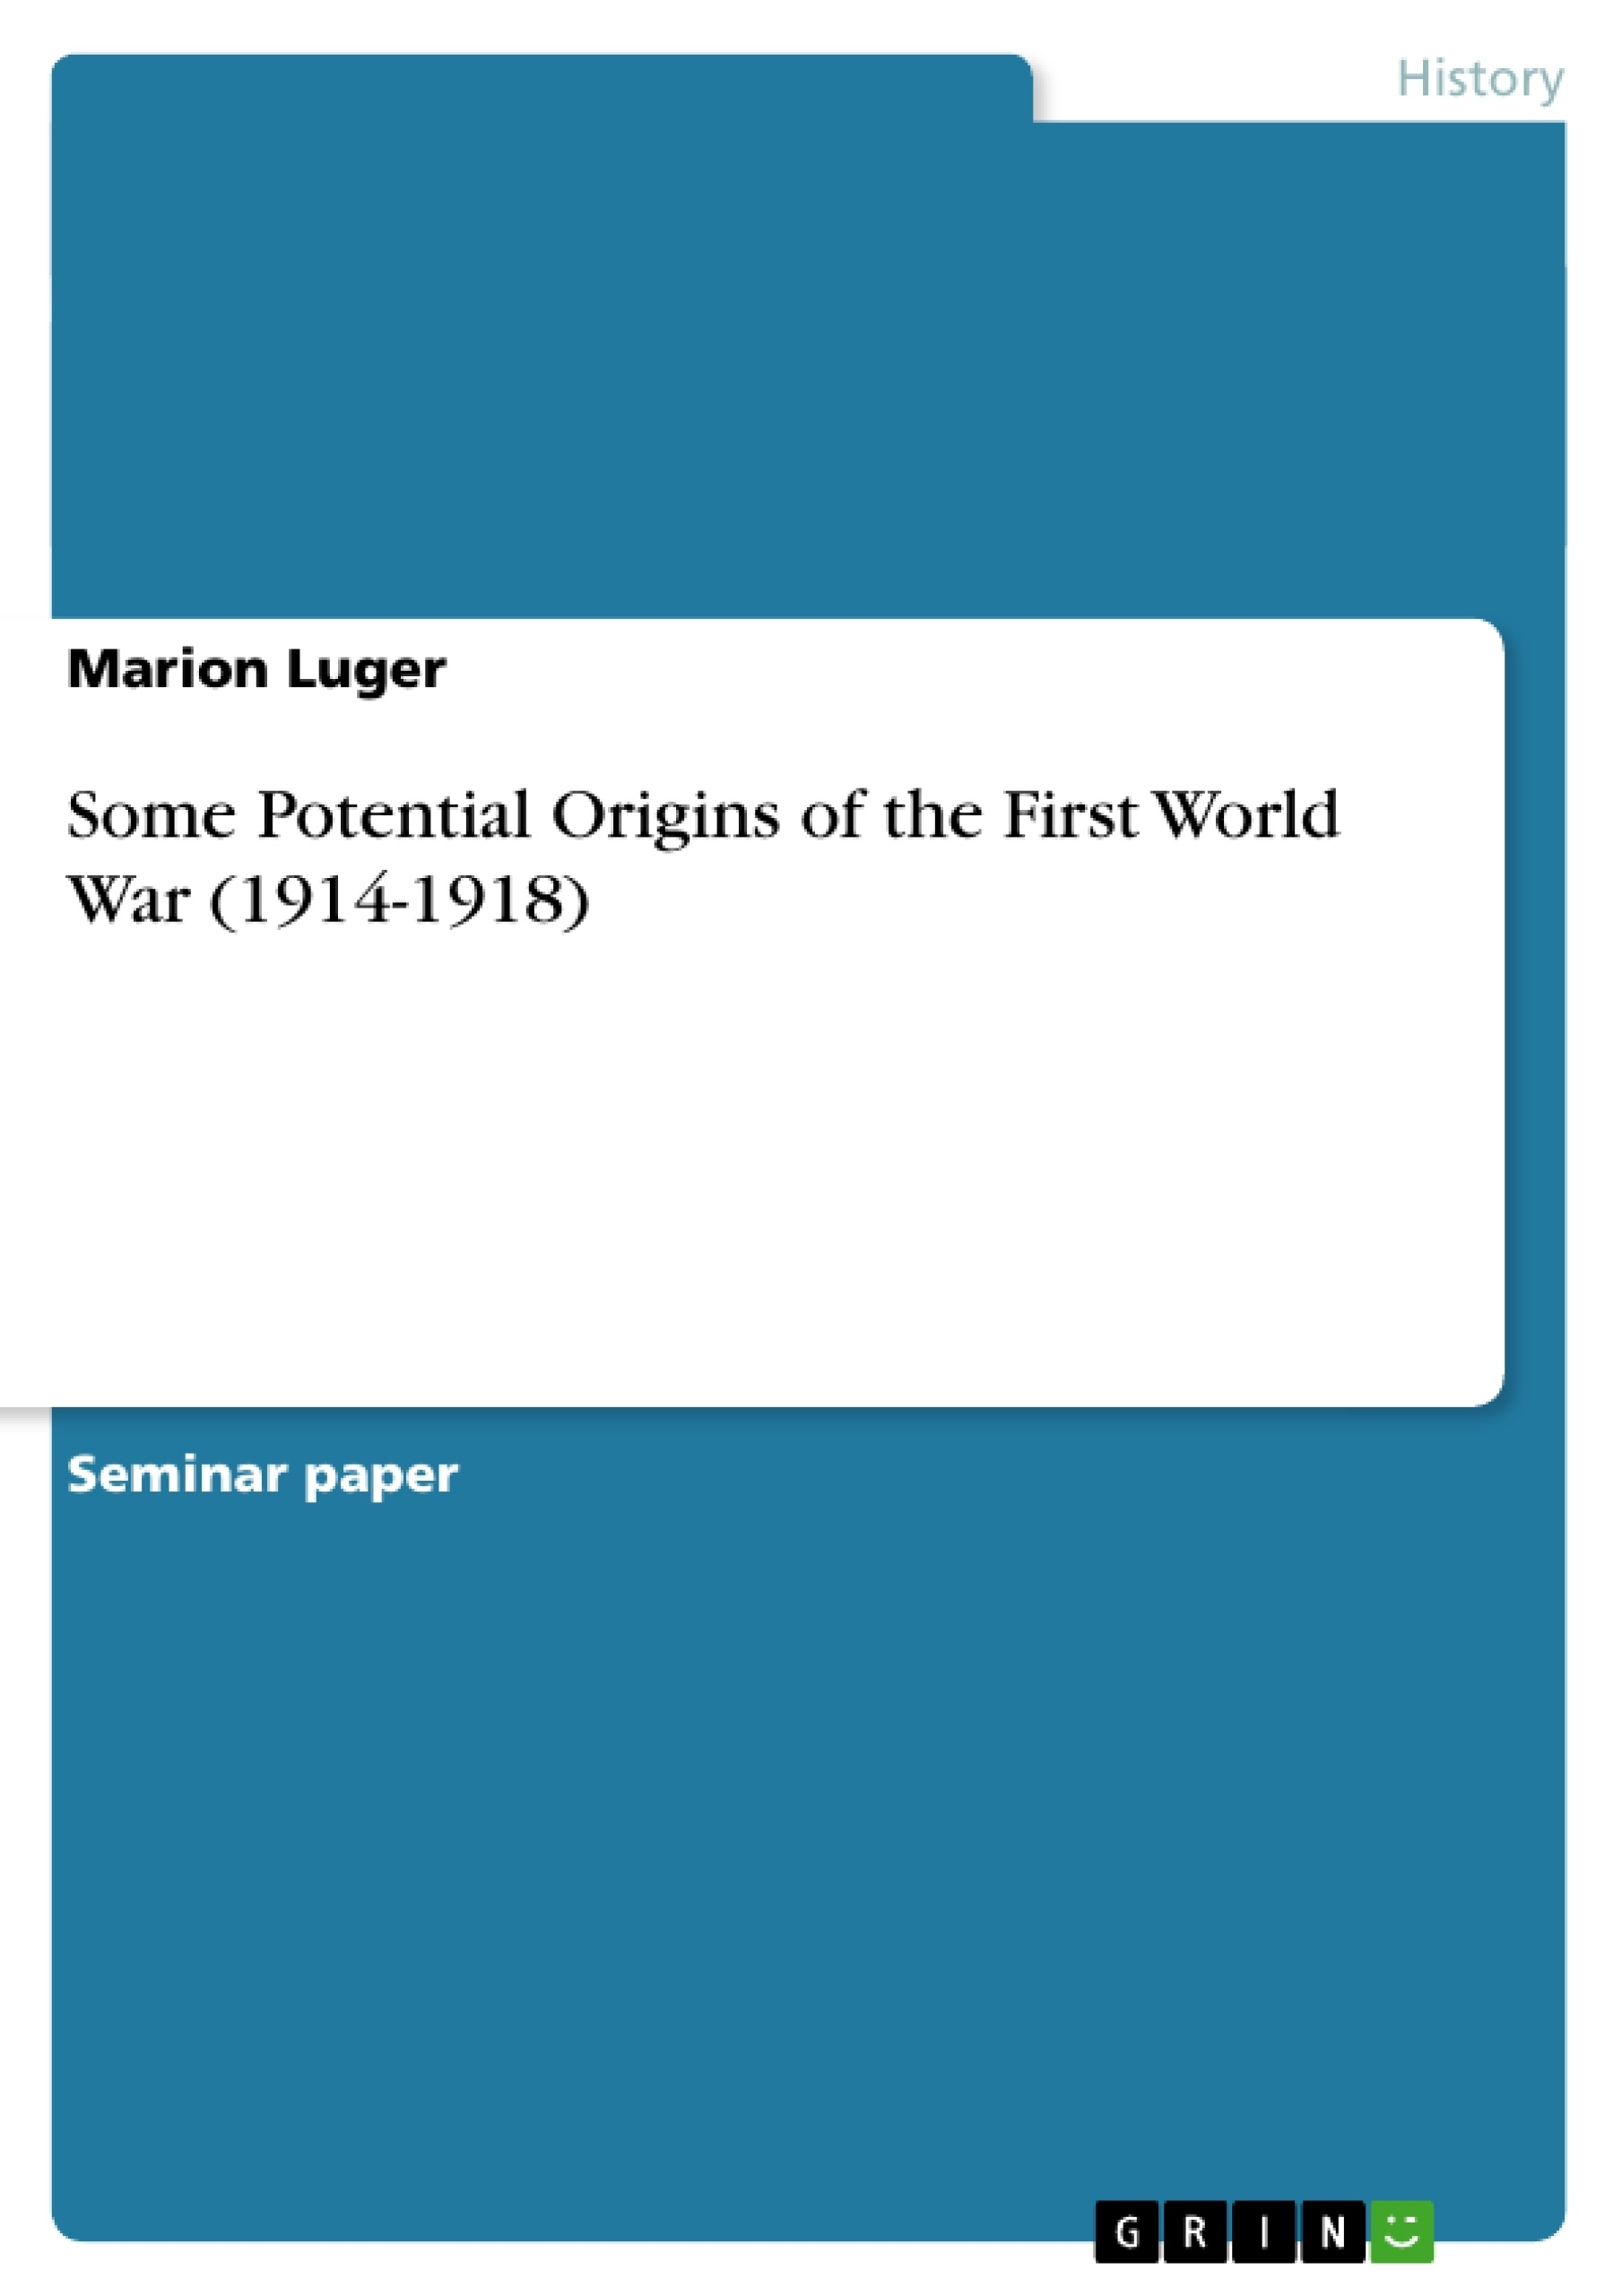 Title: Some Potential Origins of the First World War (1914-1918)